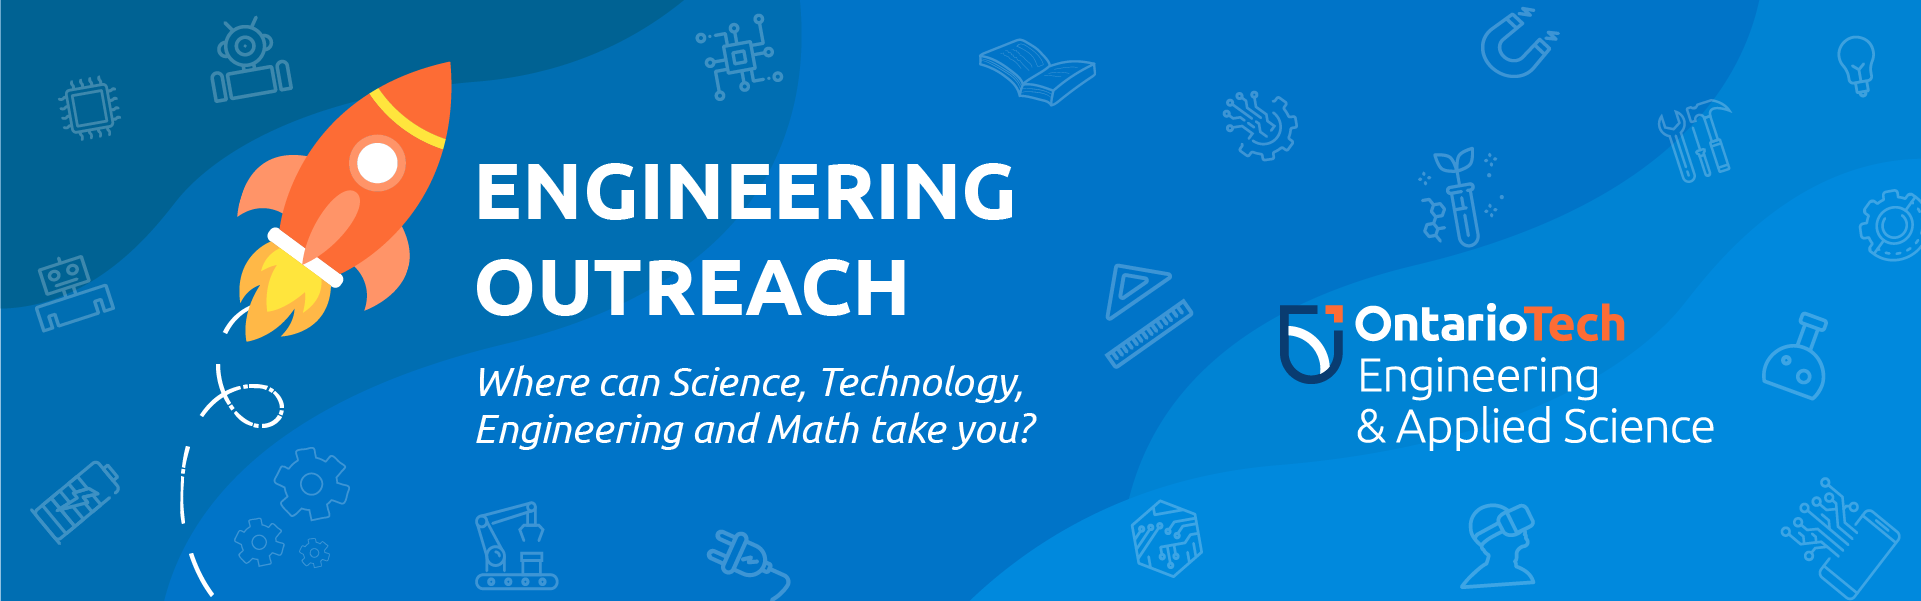 Engineering Outreach